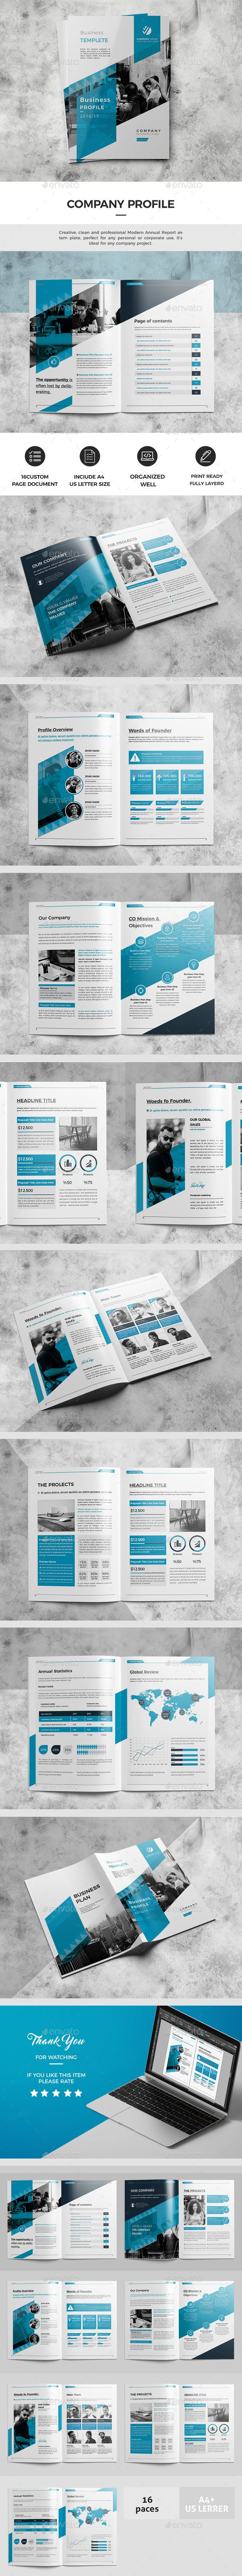 Business plan pinterest business planning brochures and business corporate business plan design template catalogs brochures design template indesign indd cheaphphosting Choice Image